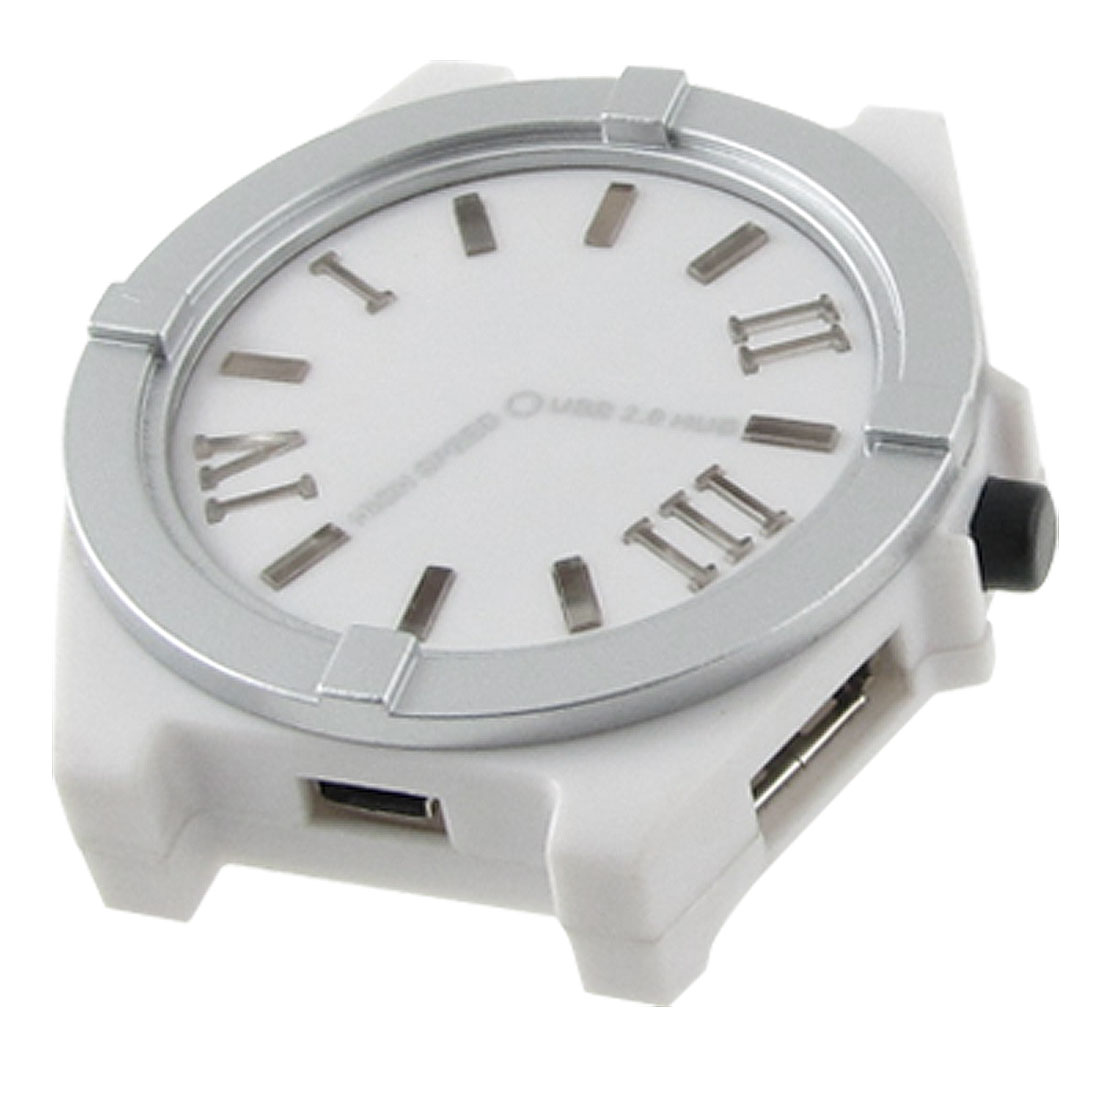 Computer Notebook Plastic Watch Shape 4 Ports USB 2.0 Hubs